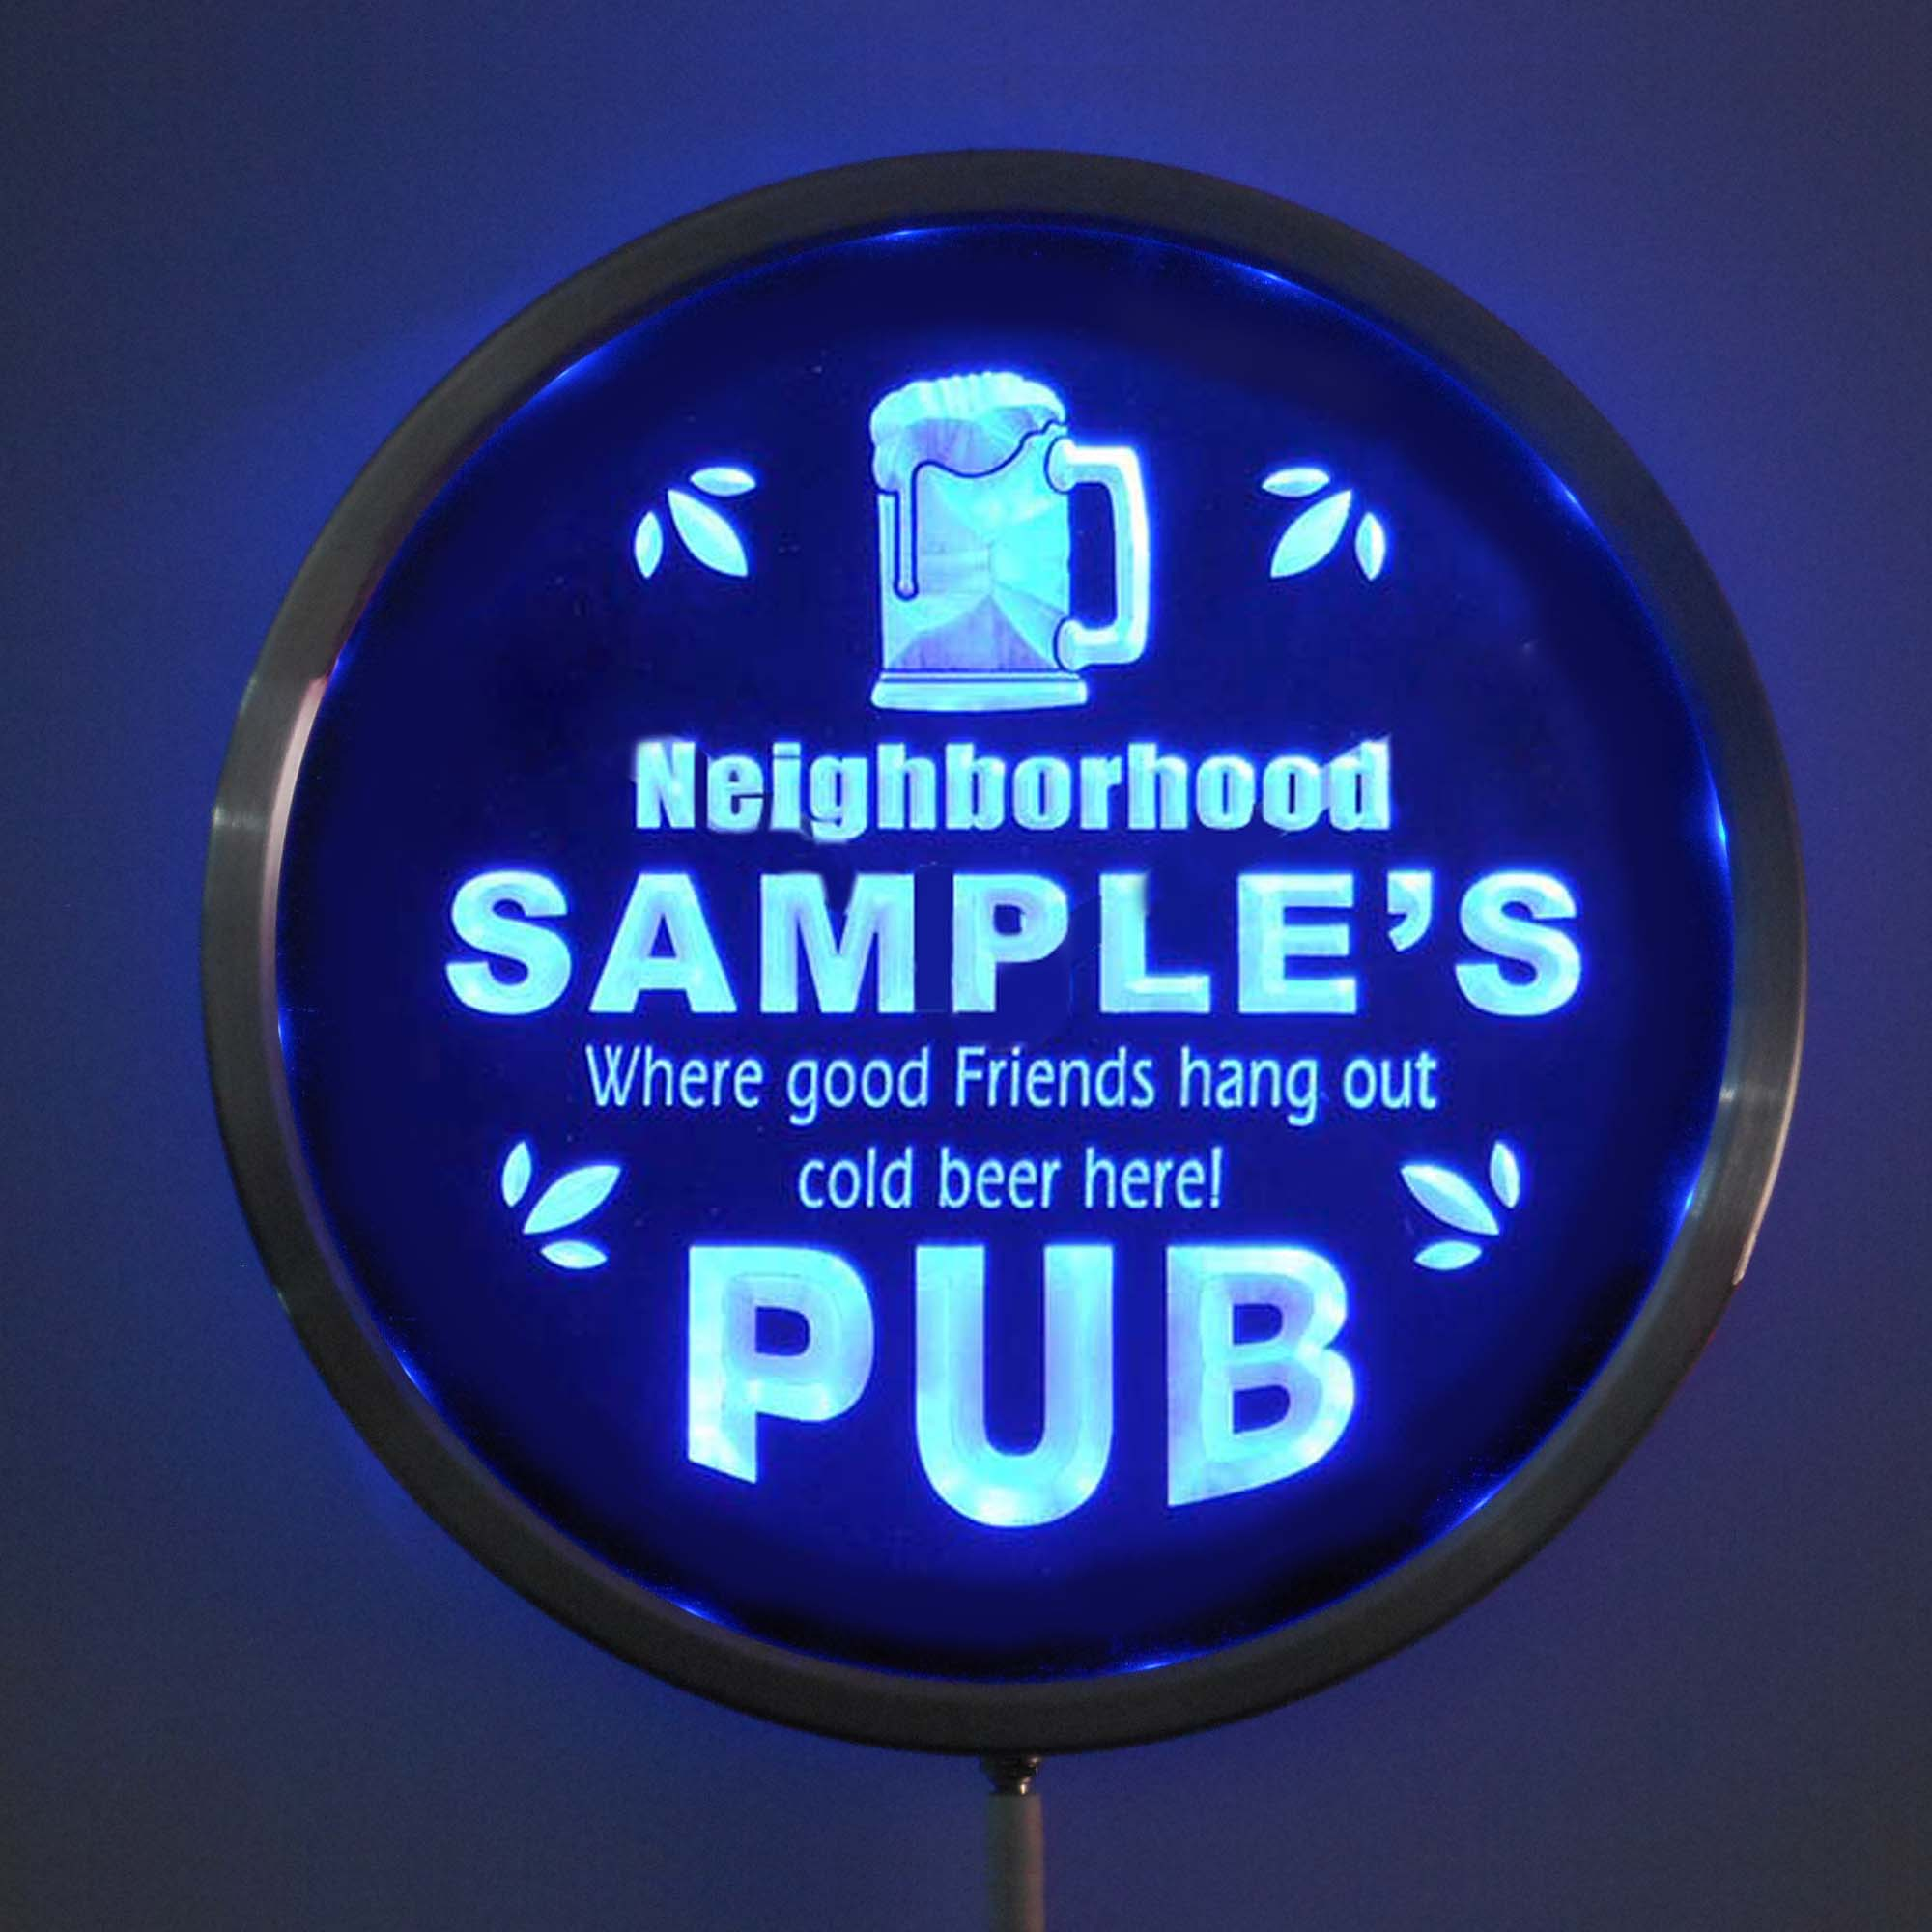 rs-pg-tm Custom LED Neon Round Signs 25cm/ 10 Inch - Personalized Neighborhood PUB RGB Multi-Color Remote Wireless Control